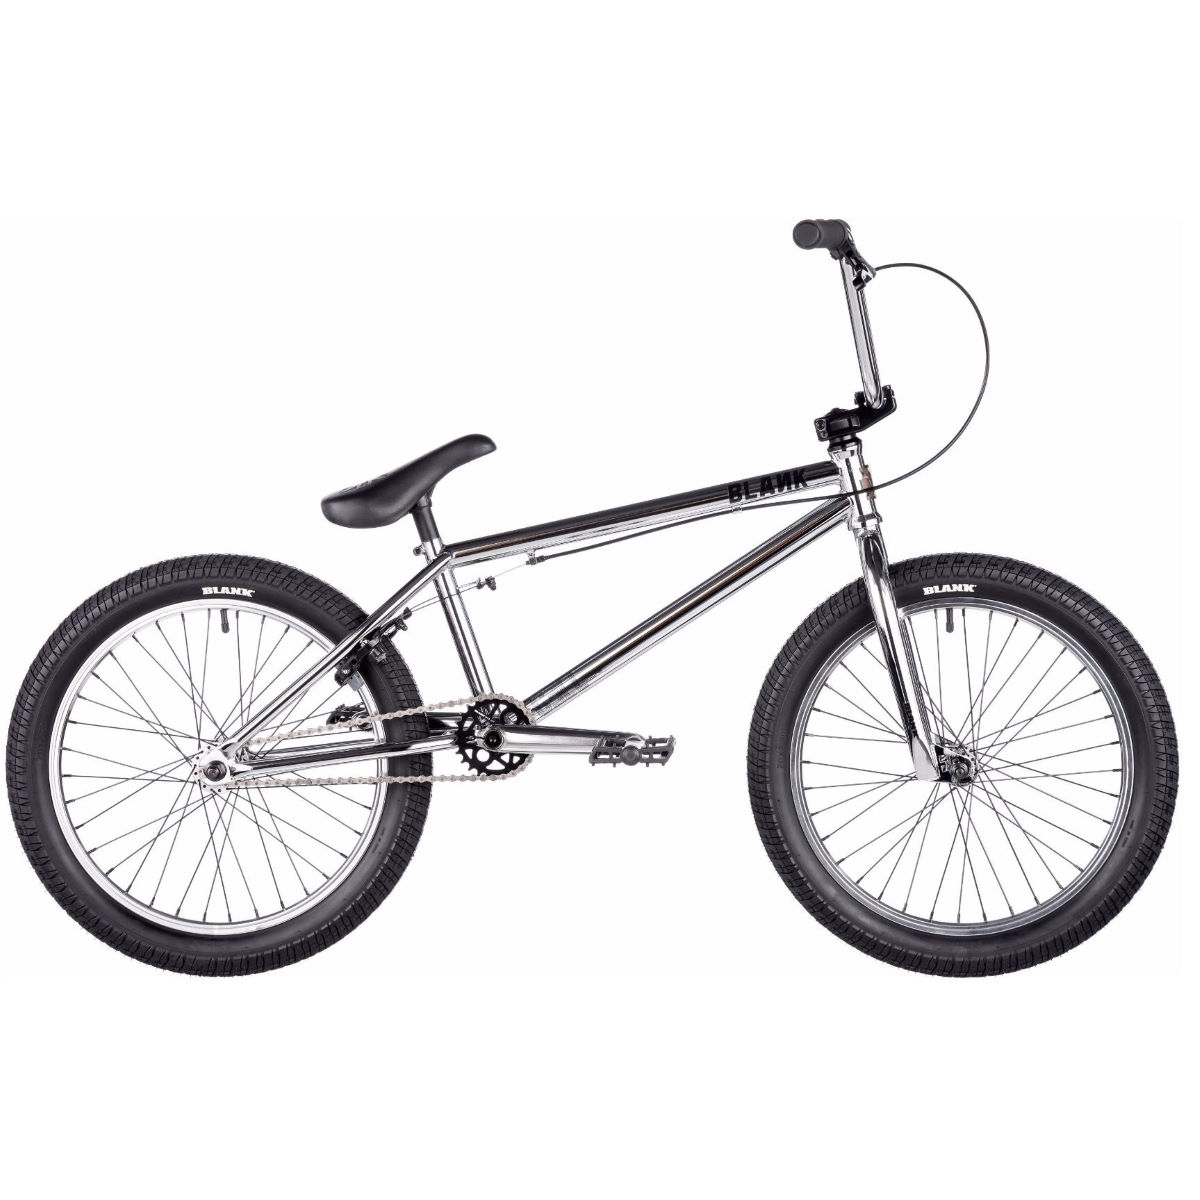 BMX Blank Cell (2017) - One Size Stock Bike Chrome BMX Street